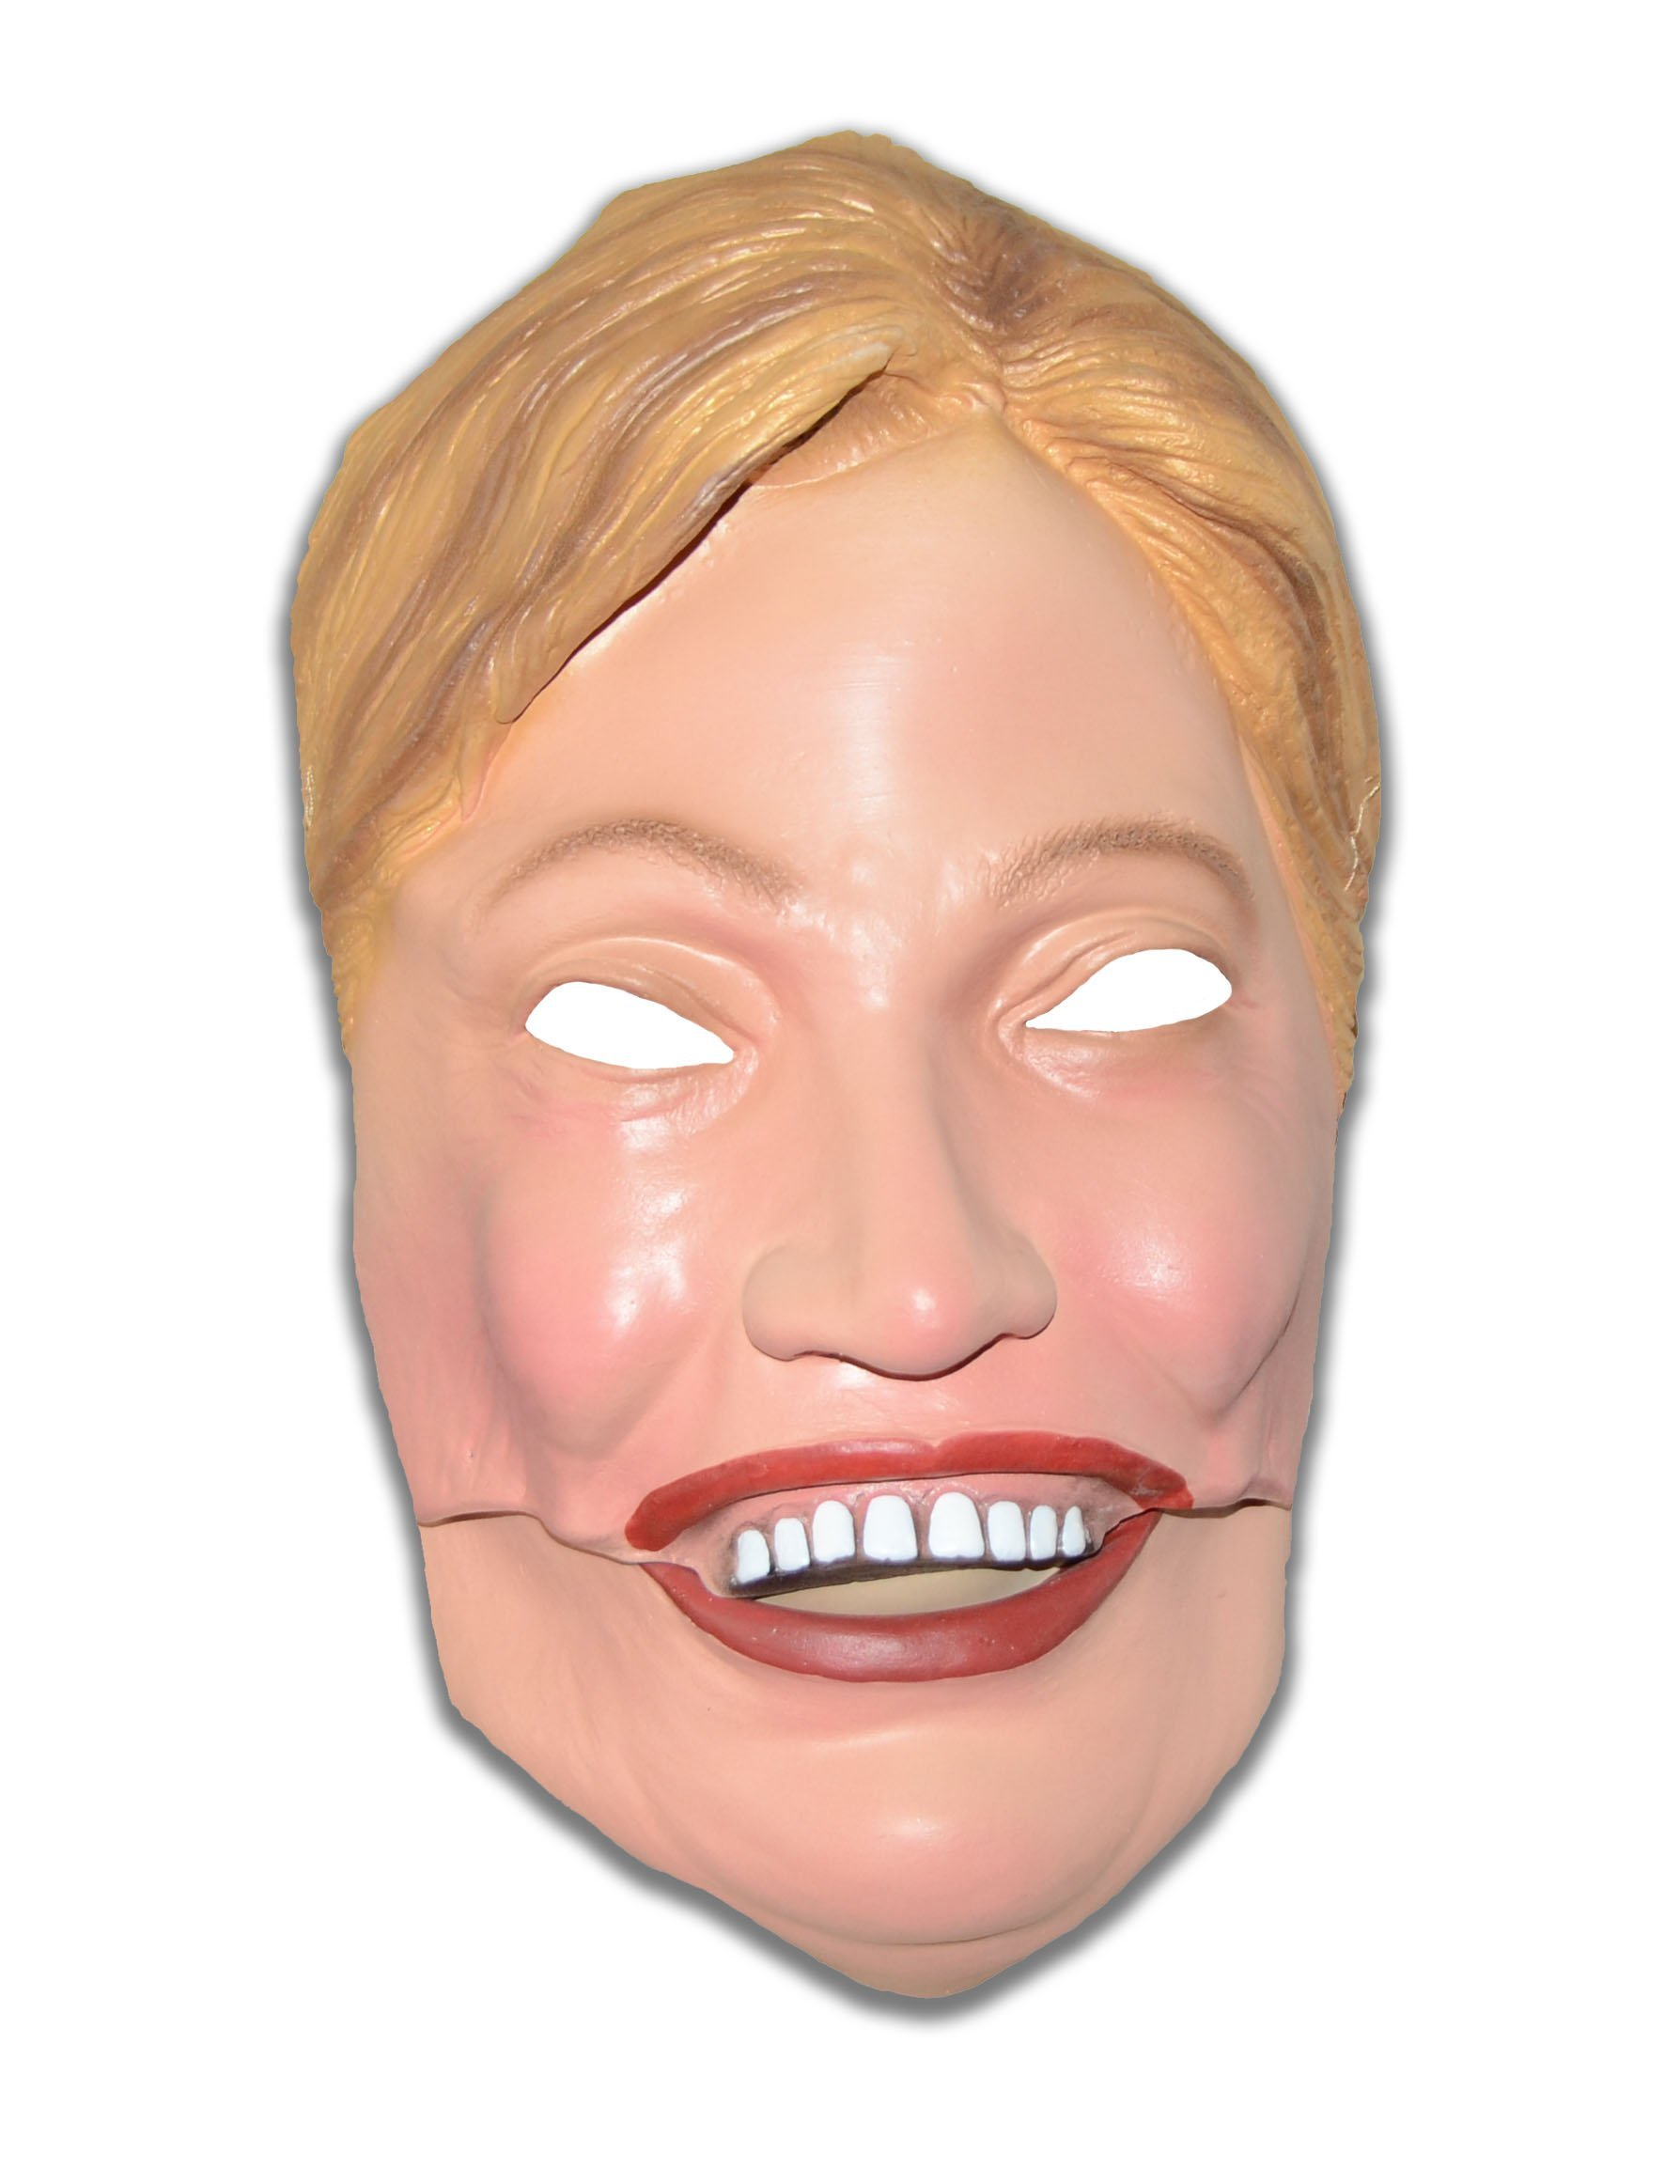 Squirrel Products Hillary Clinton Half Mask - Democratic Presidential Candidate Half Mask